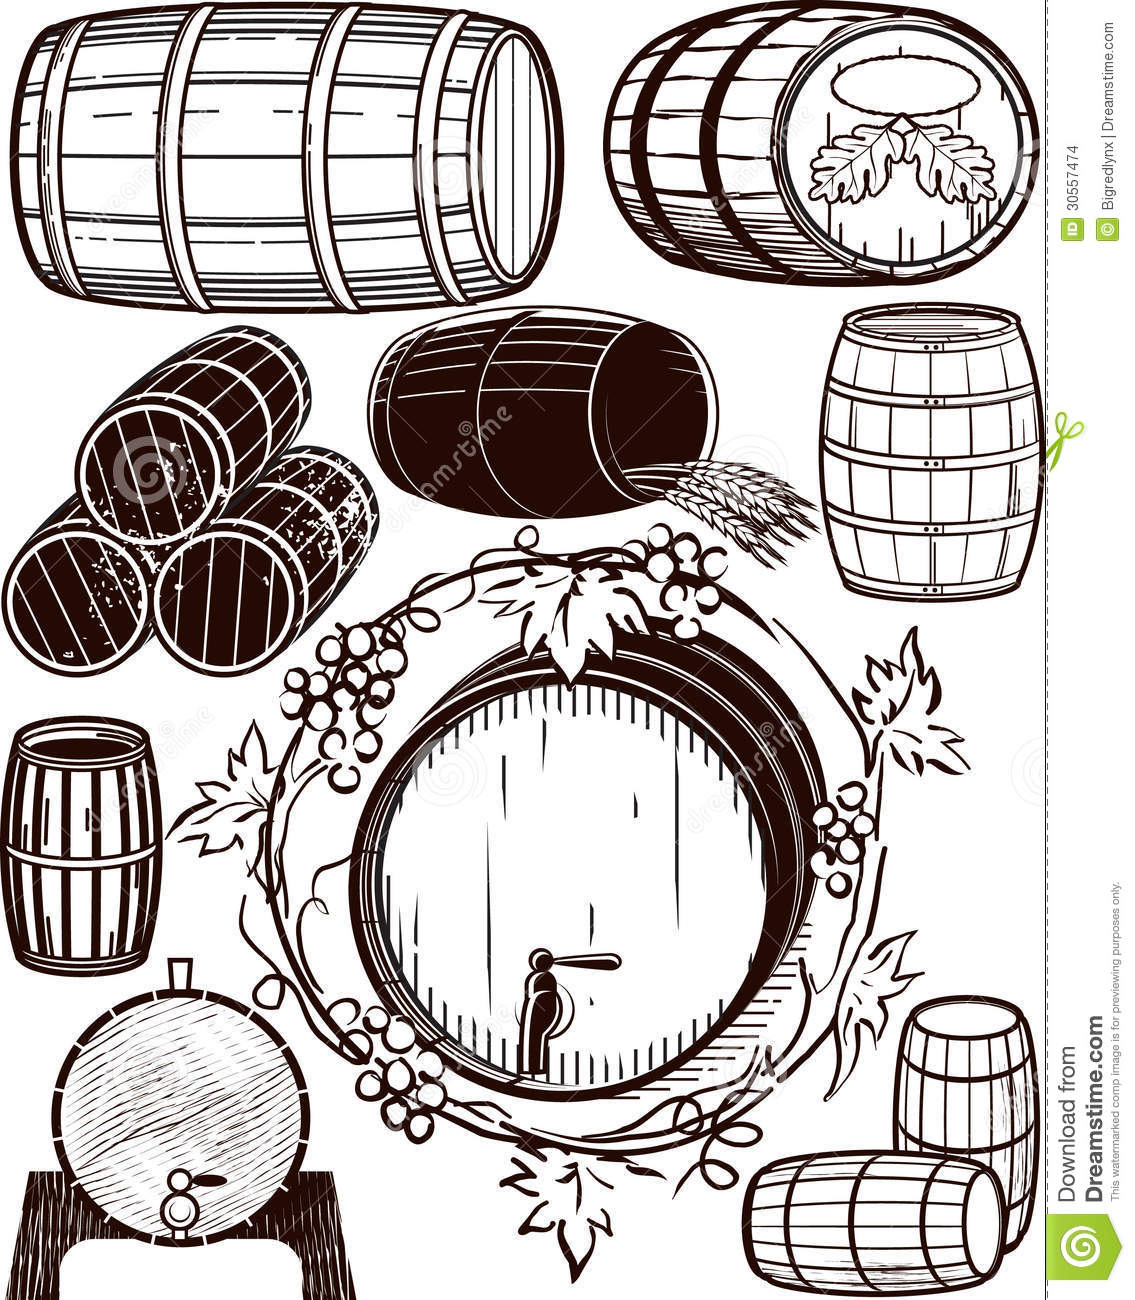 Wine barrels clipart.